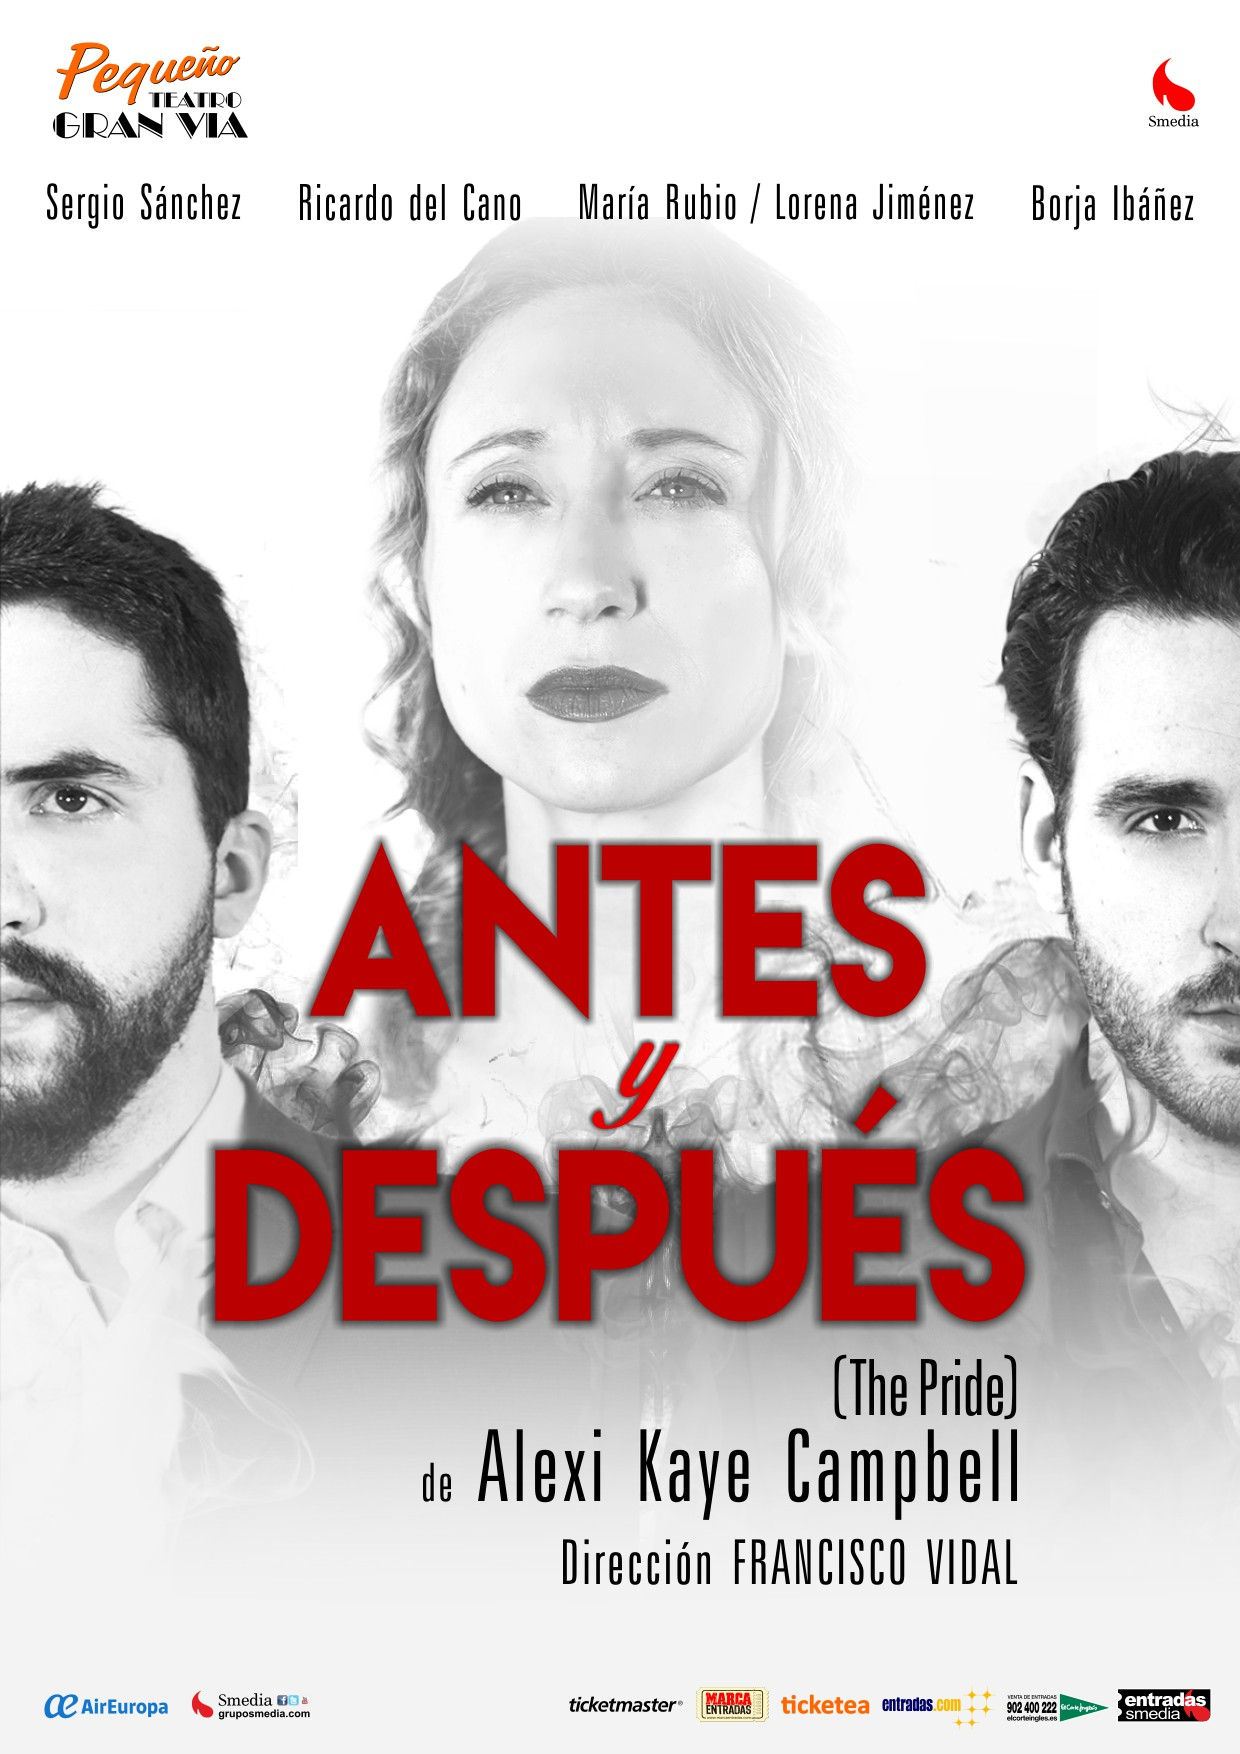 Antes y después – The pride